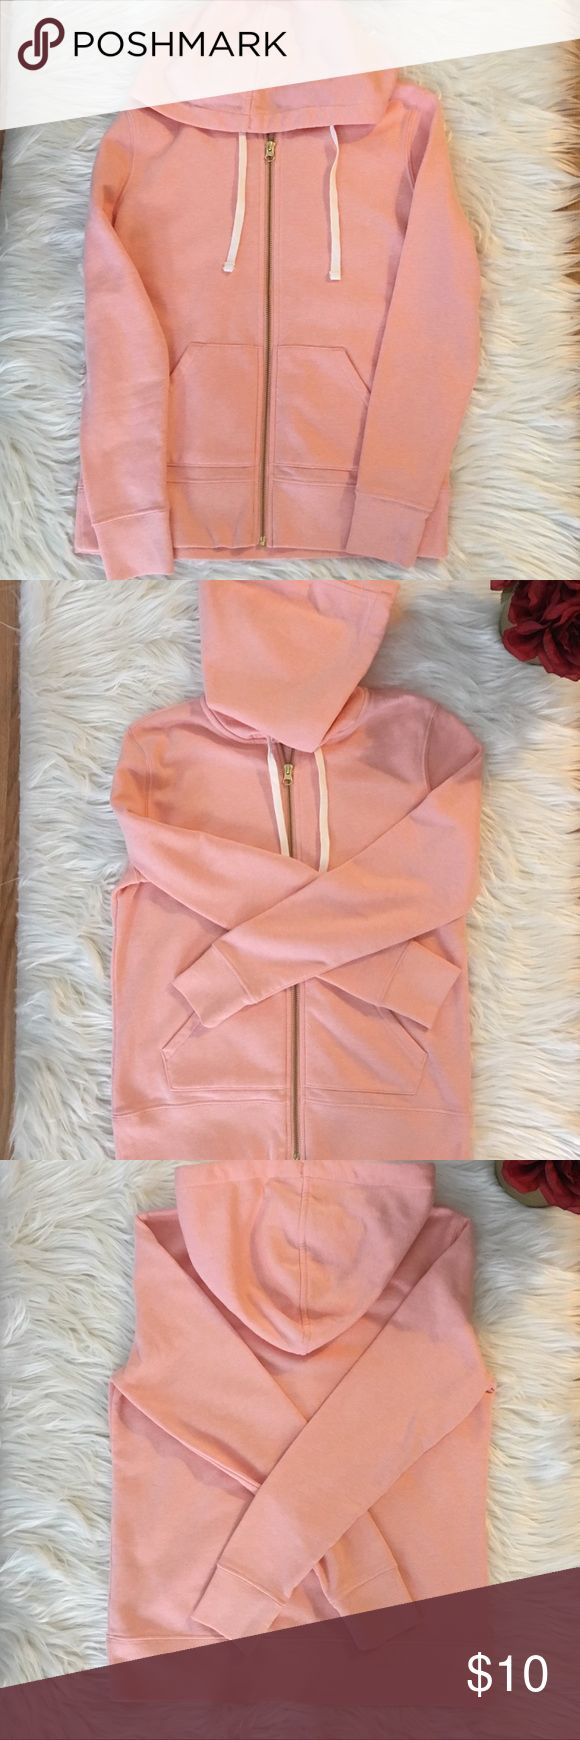 Women's old navy hoodie Women's old navy hoodie size XS. In great condition - new without tag! Old Navy Tops Sweatshirts & Hoodies